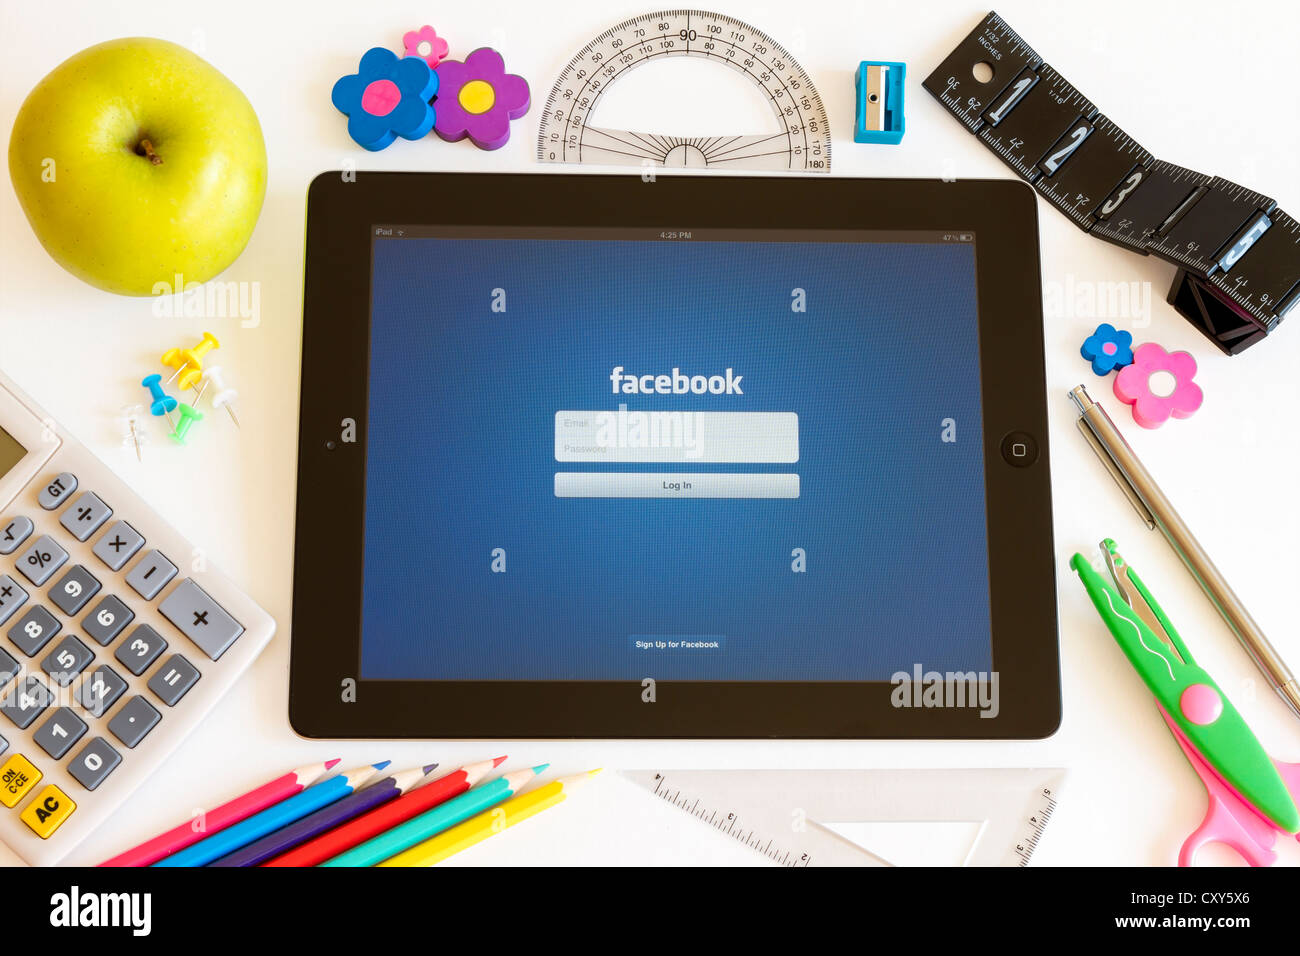 Facebook on Ipad 3 with school accesories on white background - Stock Image